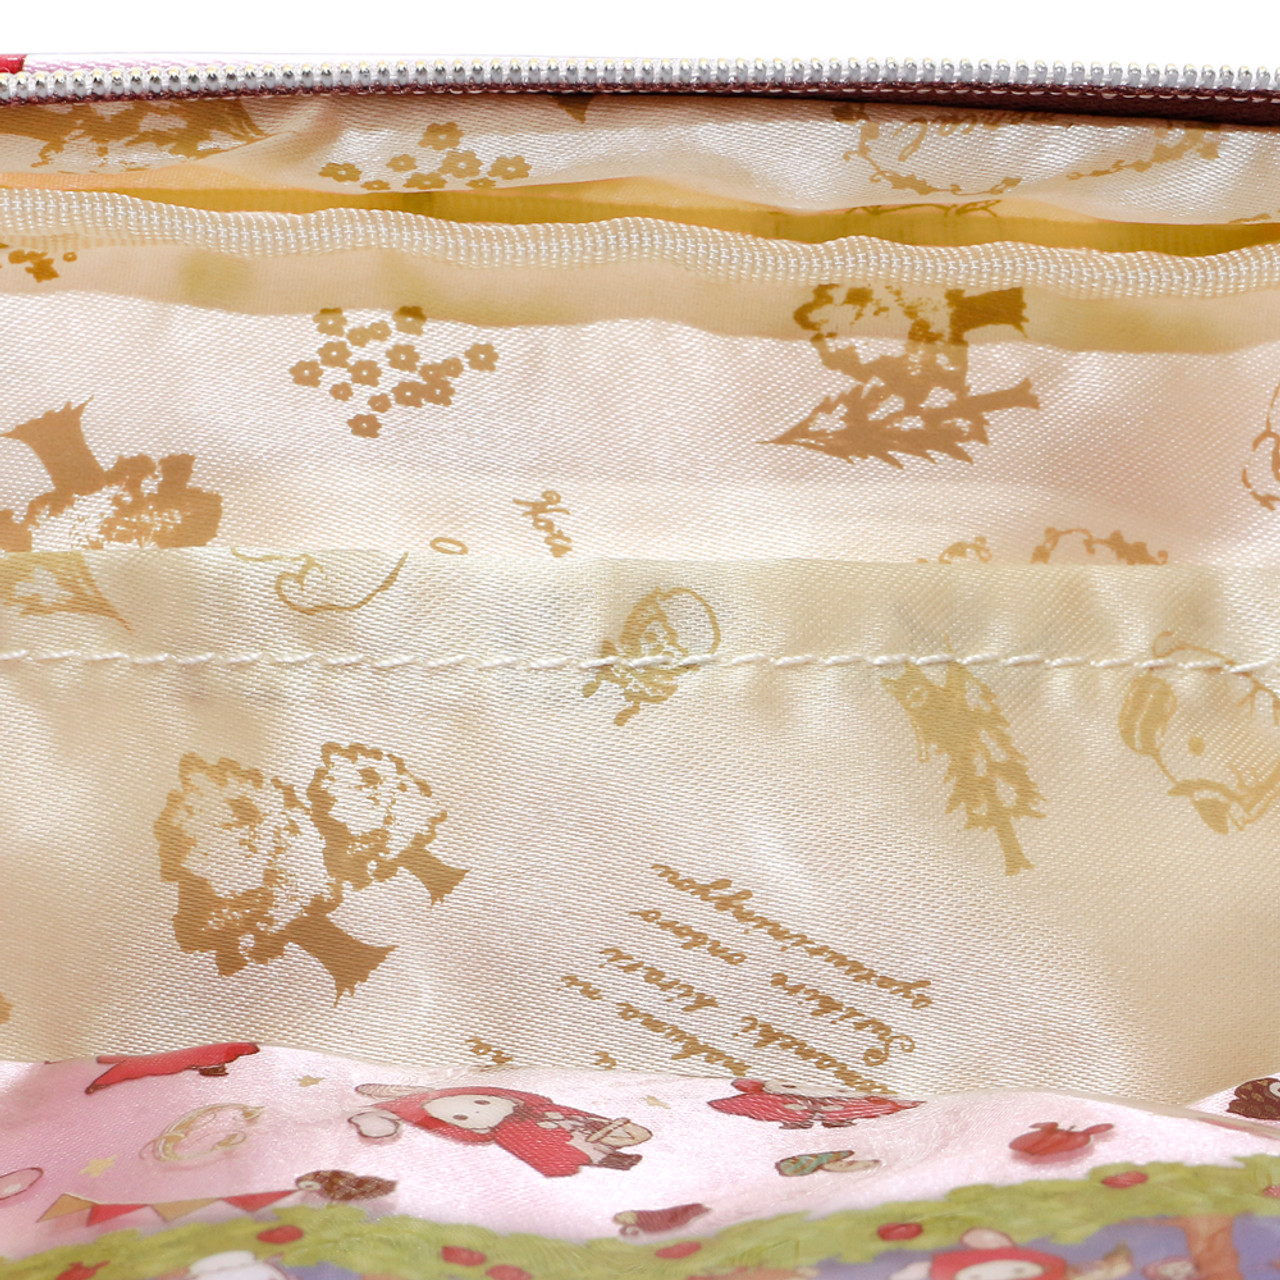 San-x Sentimental Circus Shappo Bunny Little Red Hood In Garden Pencil Case ( Inner View )